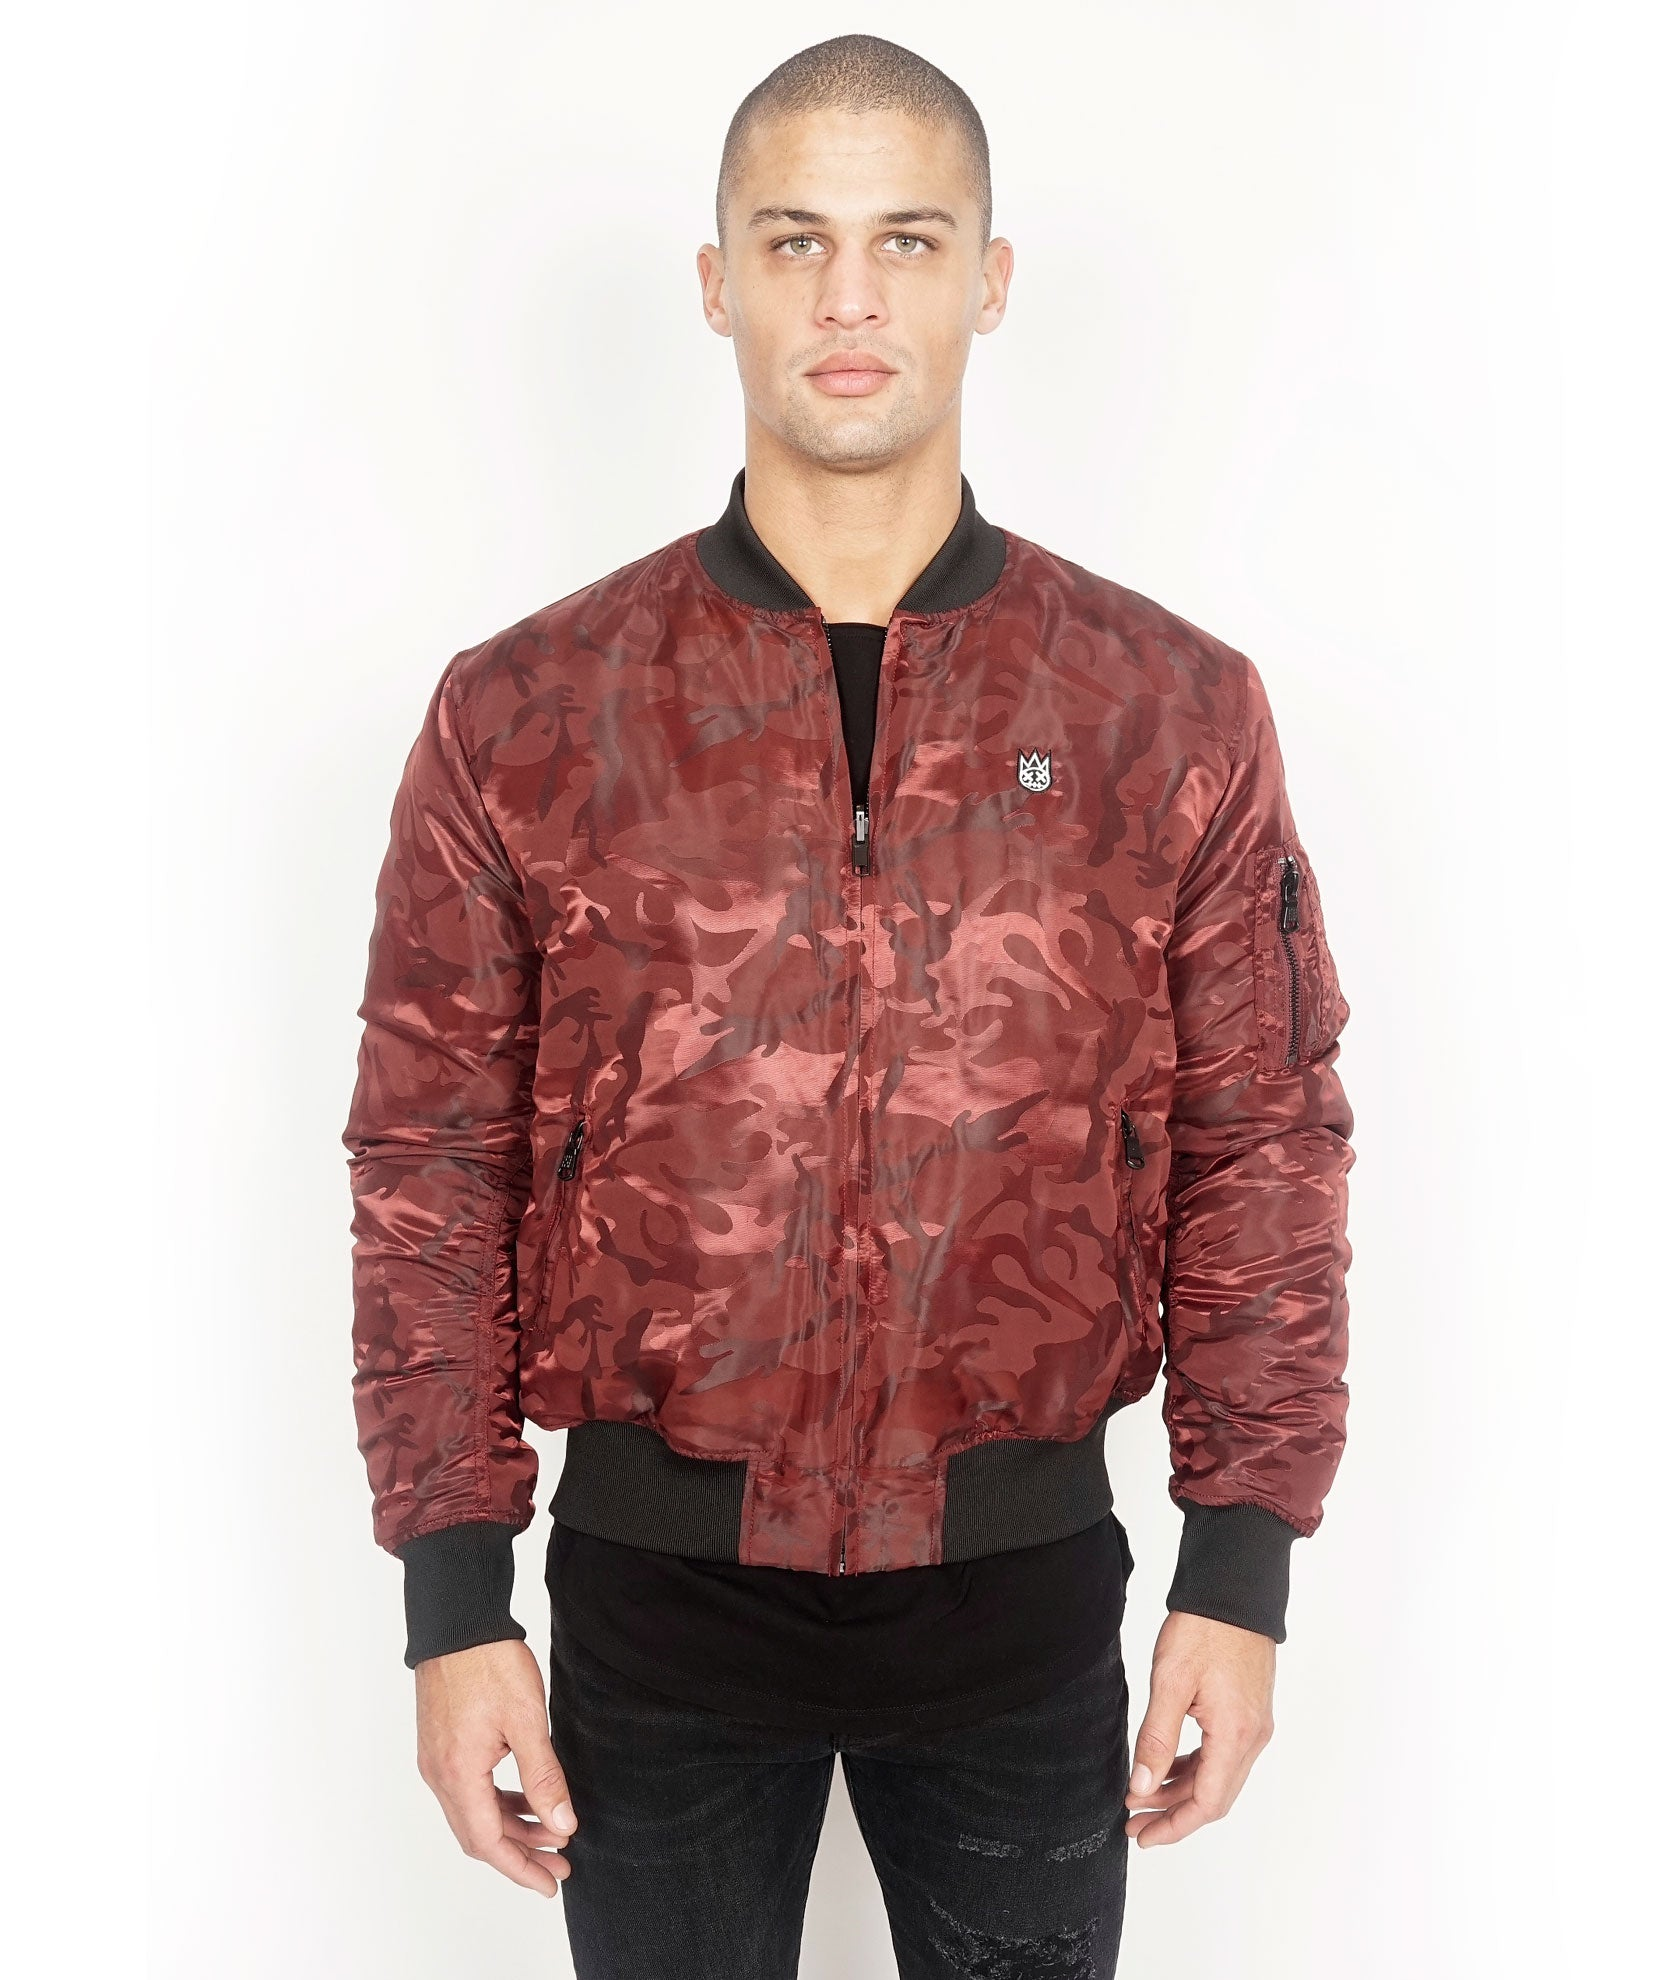 5ab8fd50943e8a Load image into Gallery viewer, Cult of IndividualityMen's Reversible  Bomber Jacket ...